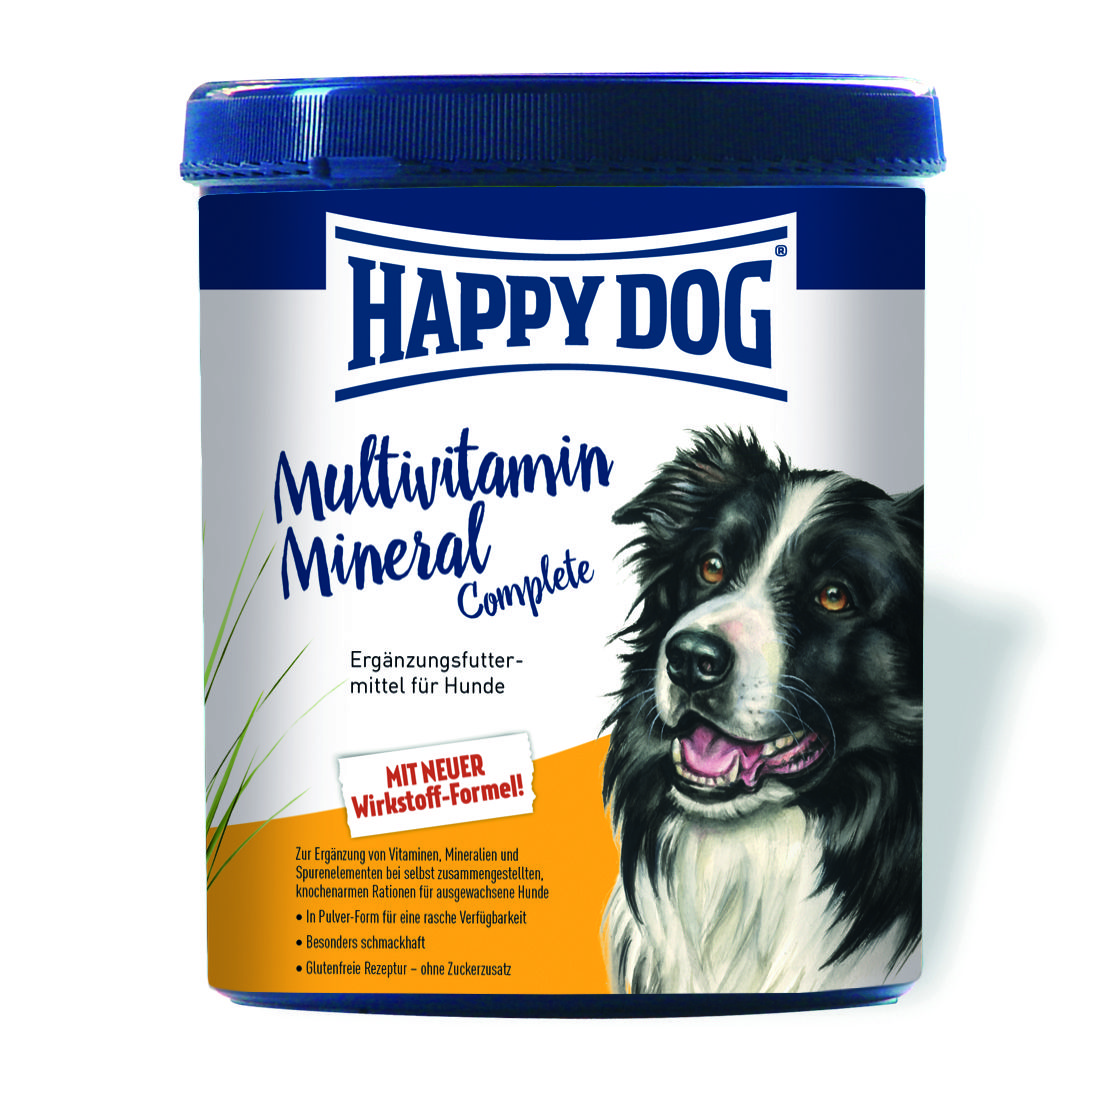 Витамины Happy Dog MultiVitamin Mineral Complete. Витамино-минеральный комплекс для собак